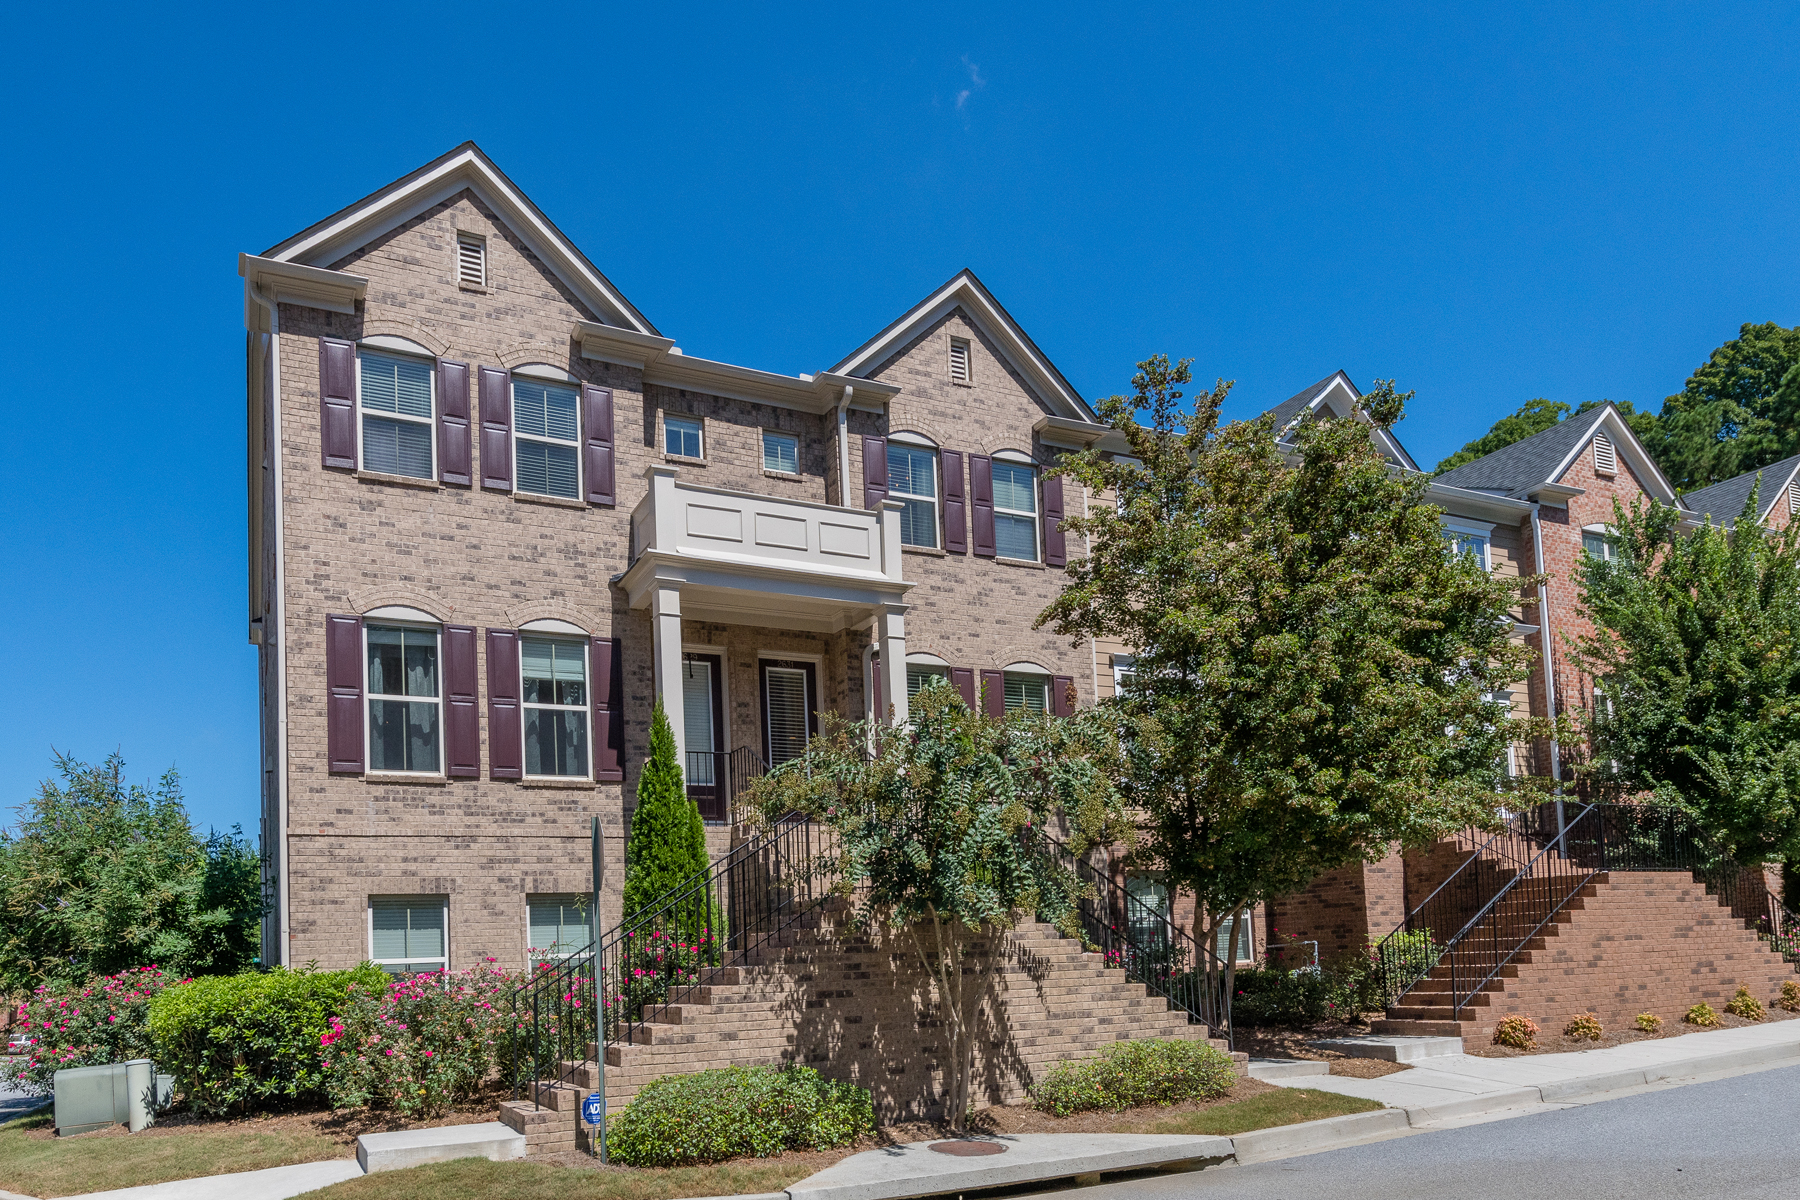 Townhouse for Sale at Beautiful Move-in Ready Three Story Townhome 2631 Portbury Place NE Atlanta, Georgia 30329 United States